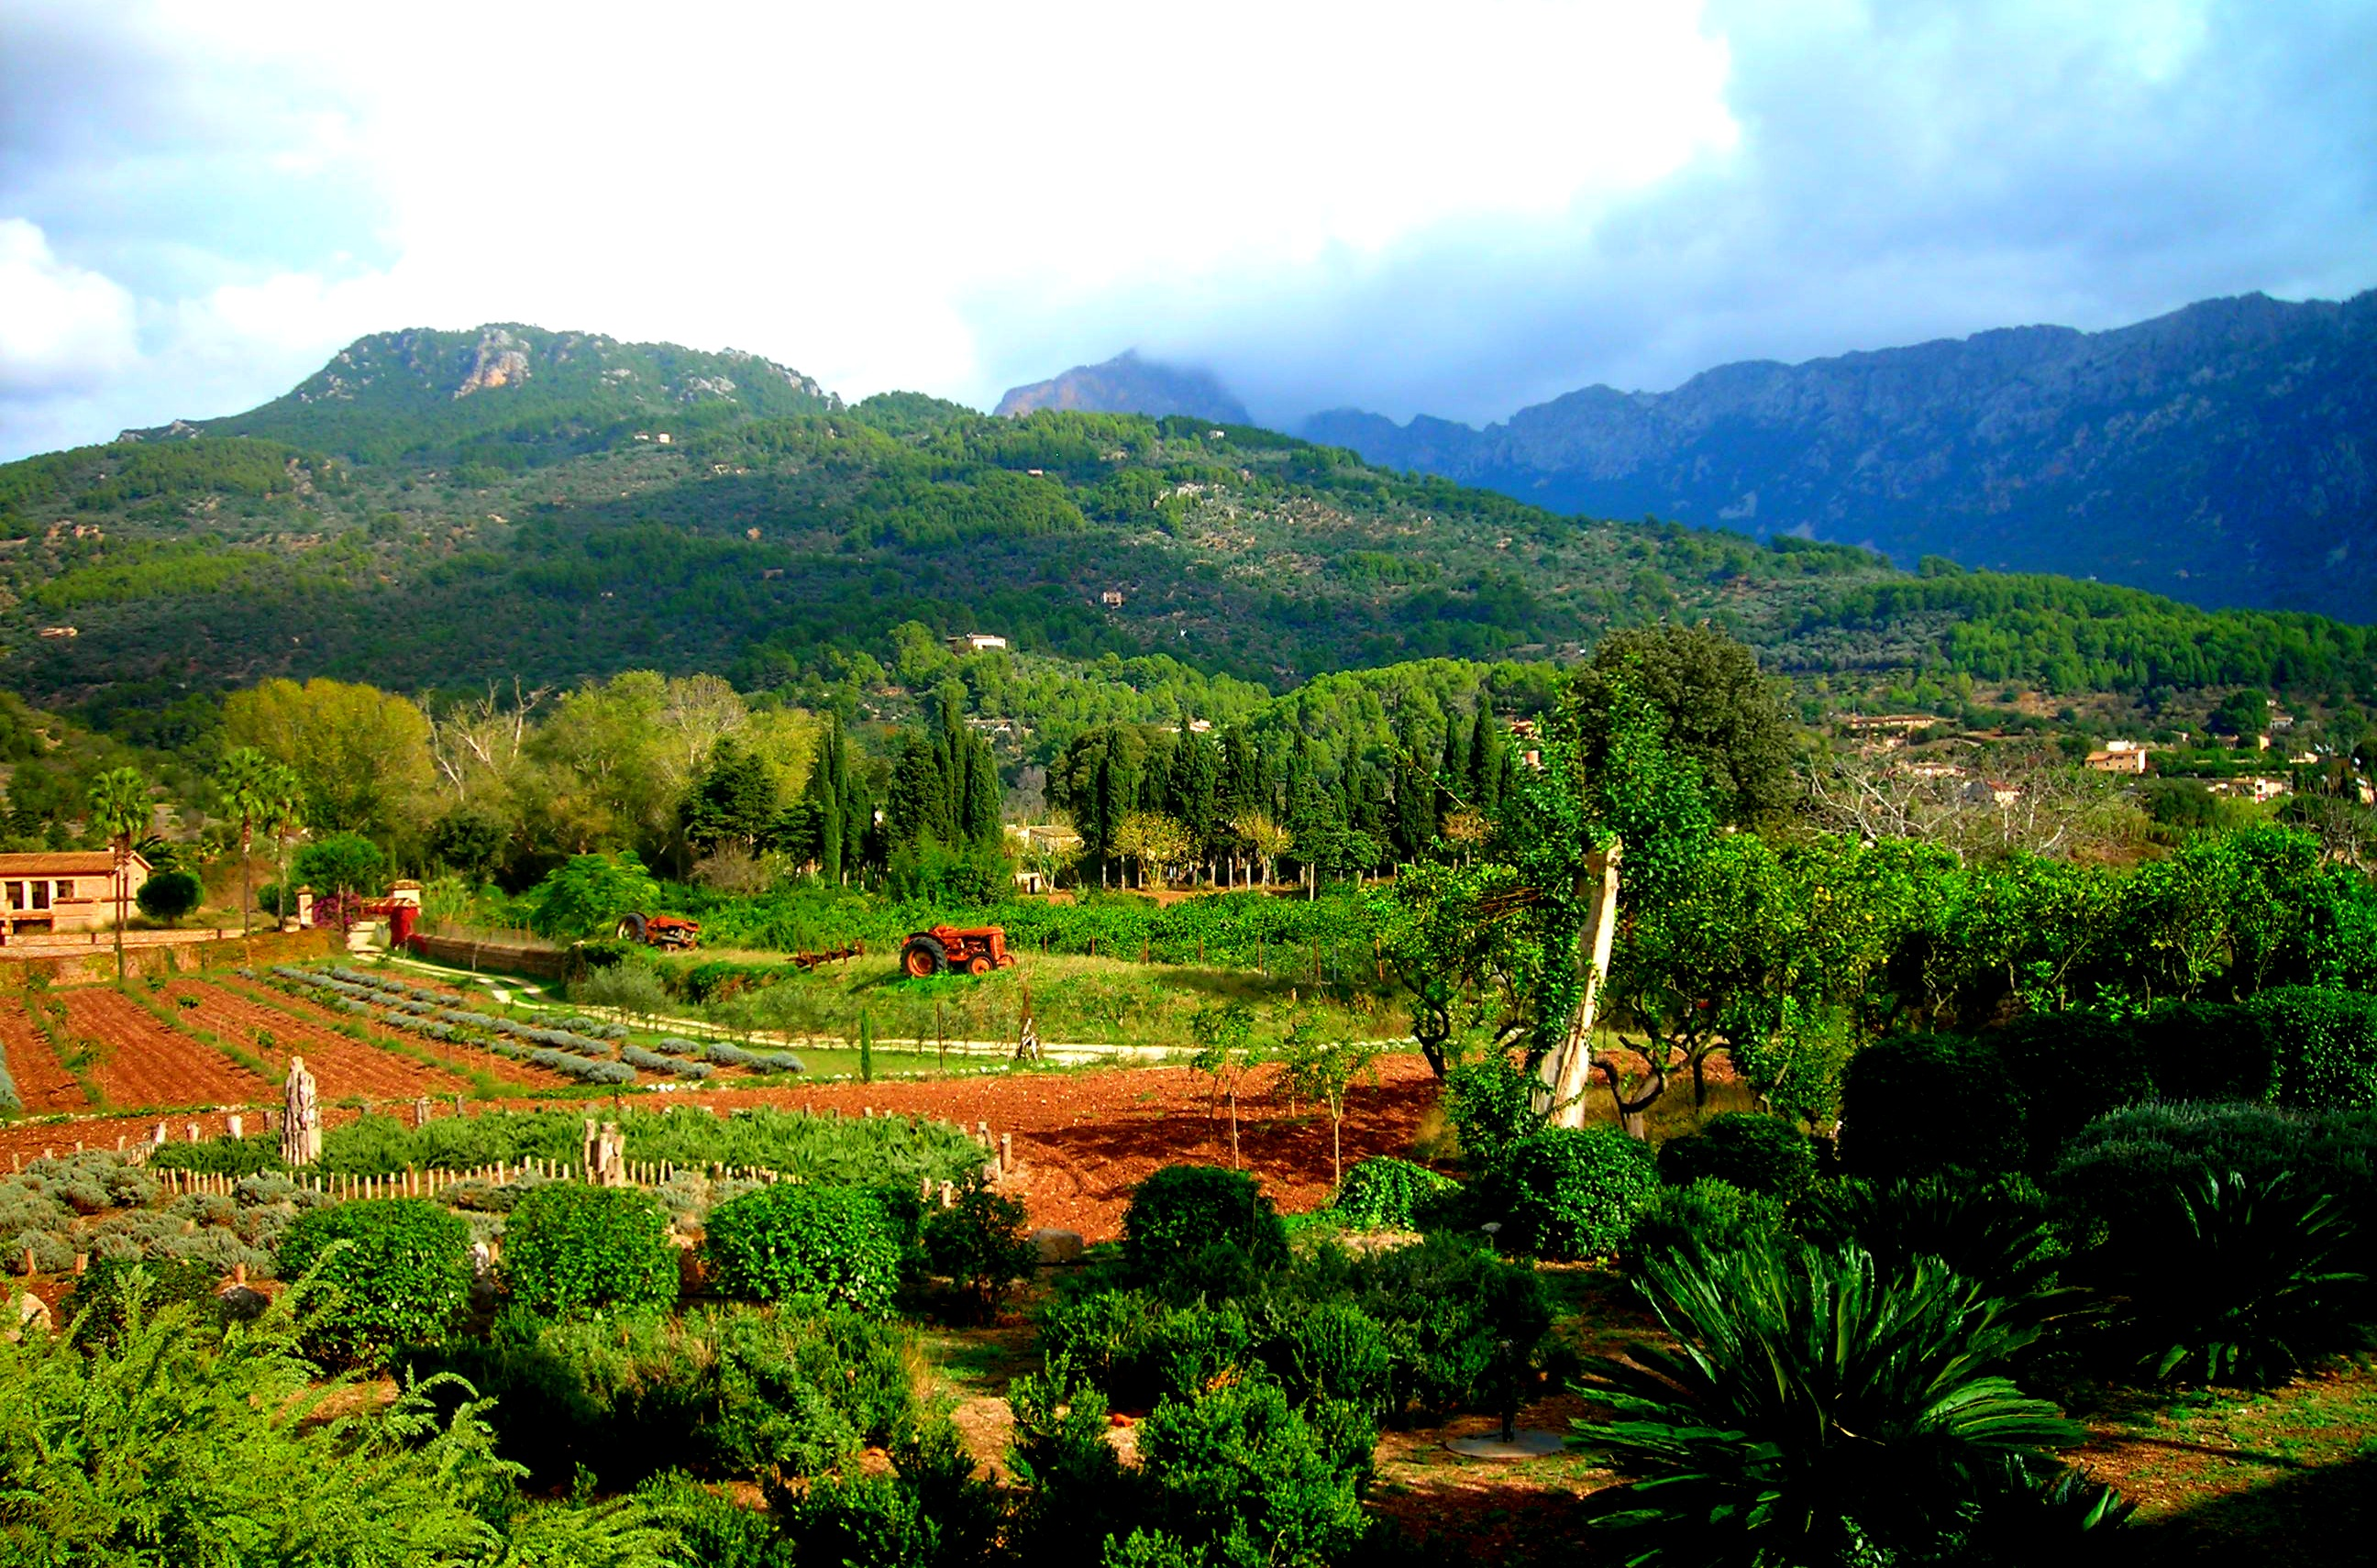 The Sierra De Tramuntana Mountains of Palma de Majorca - inviting climbers, hikers and charms every visitor.